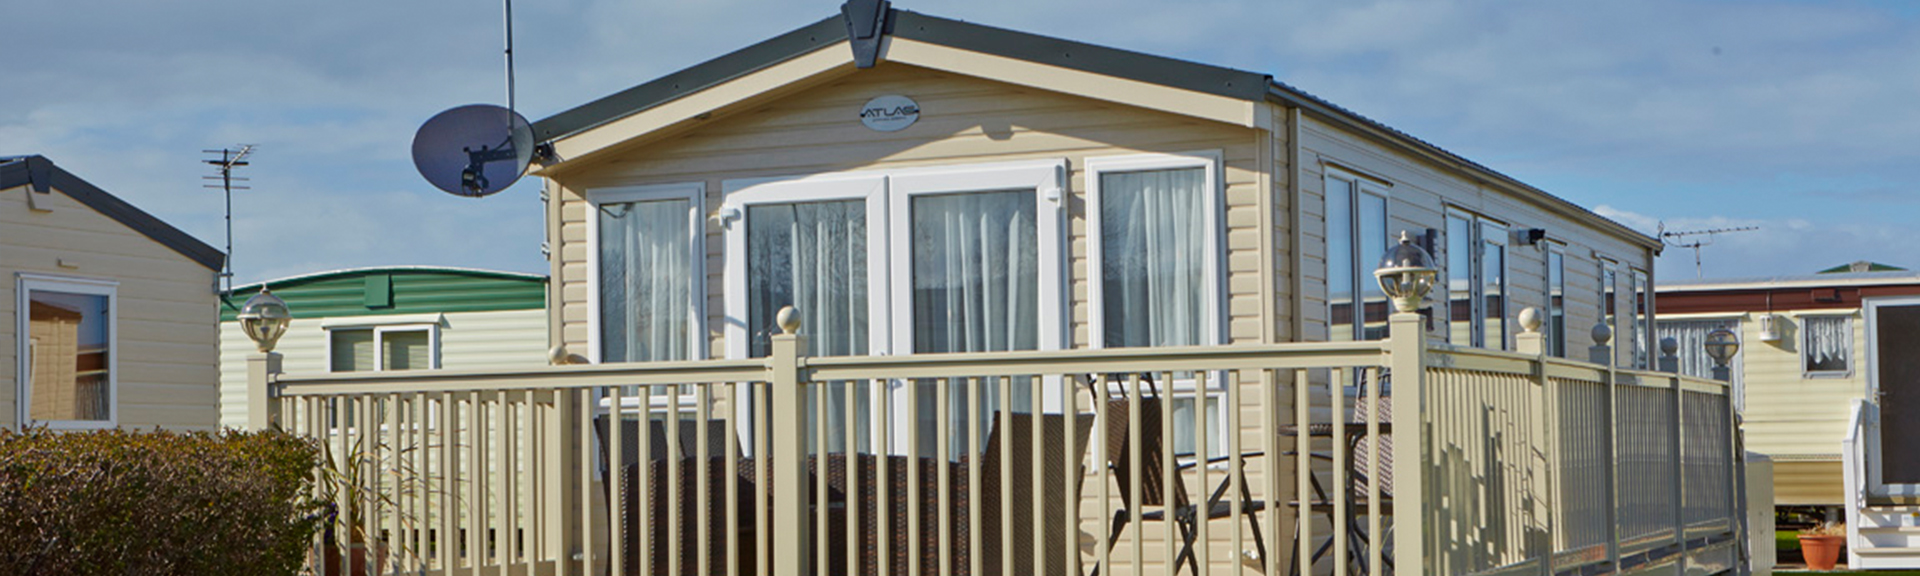 4 More Tips for Buying a Static Caravan